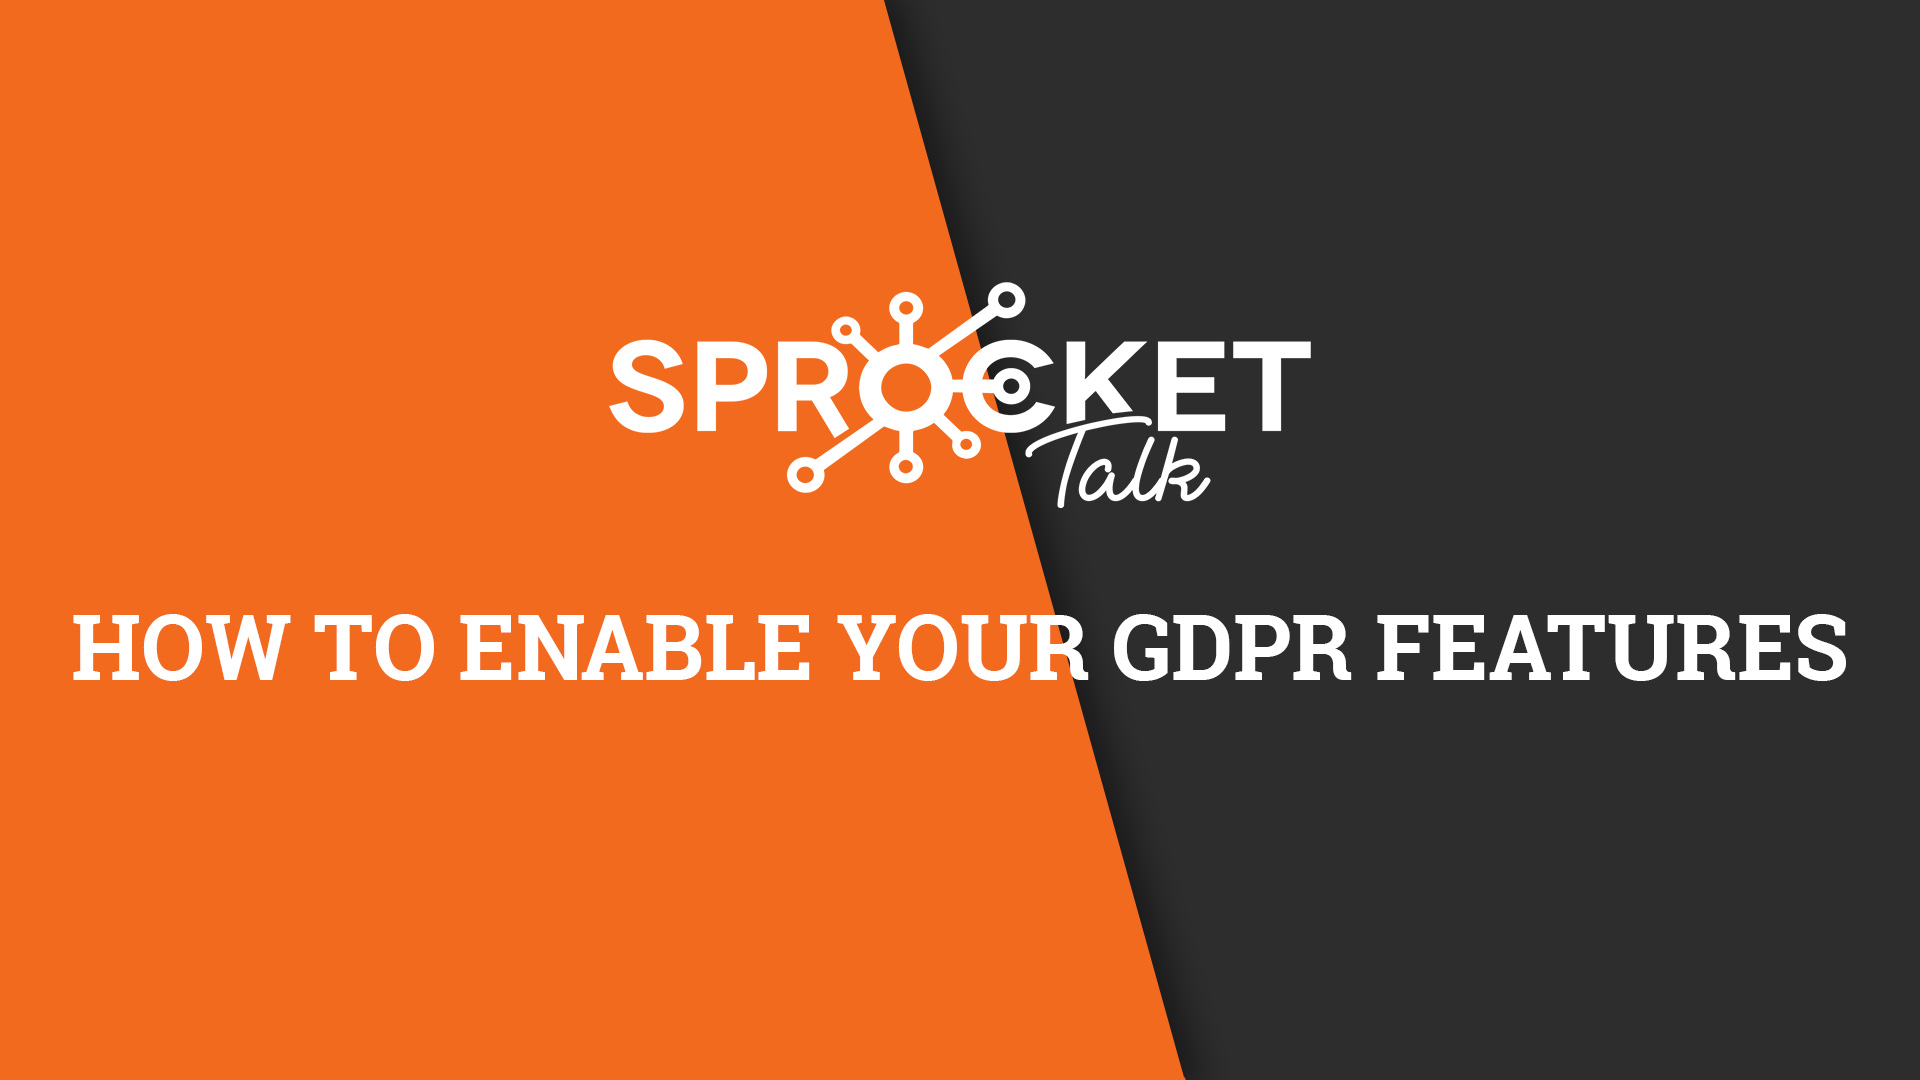 How to Enable Your GDPR Features